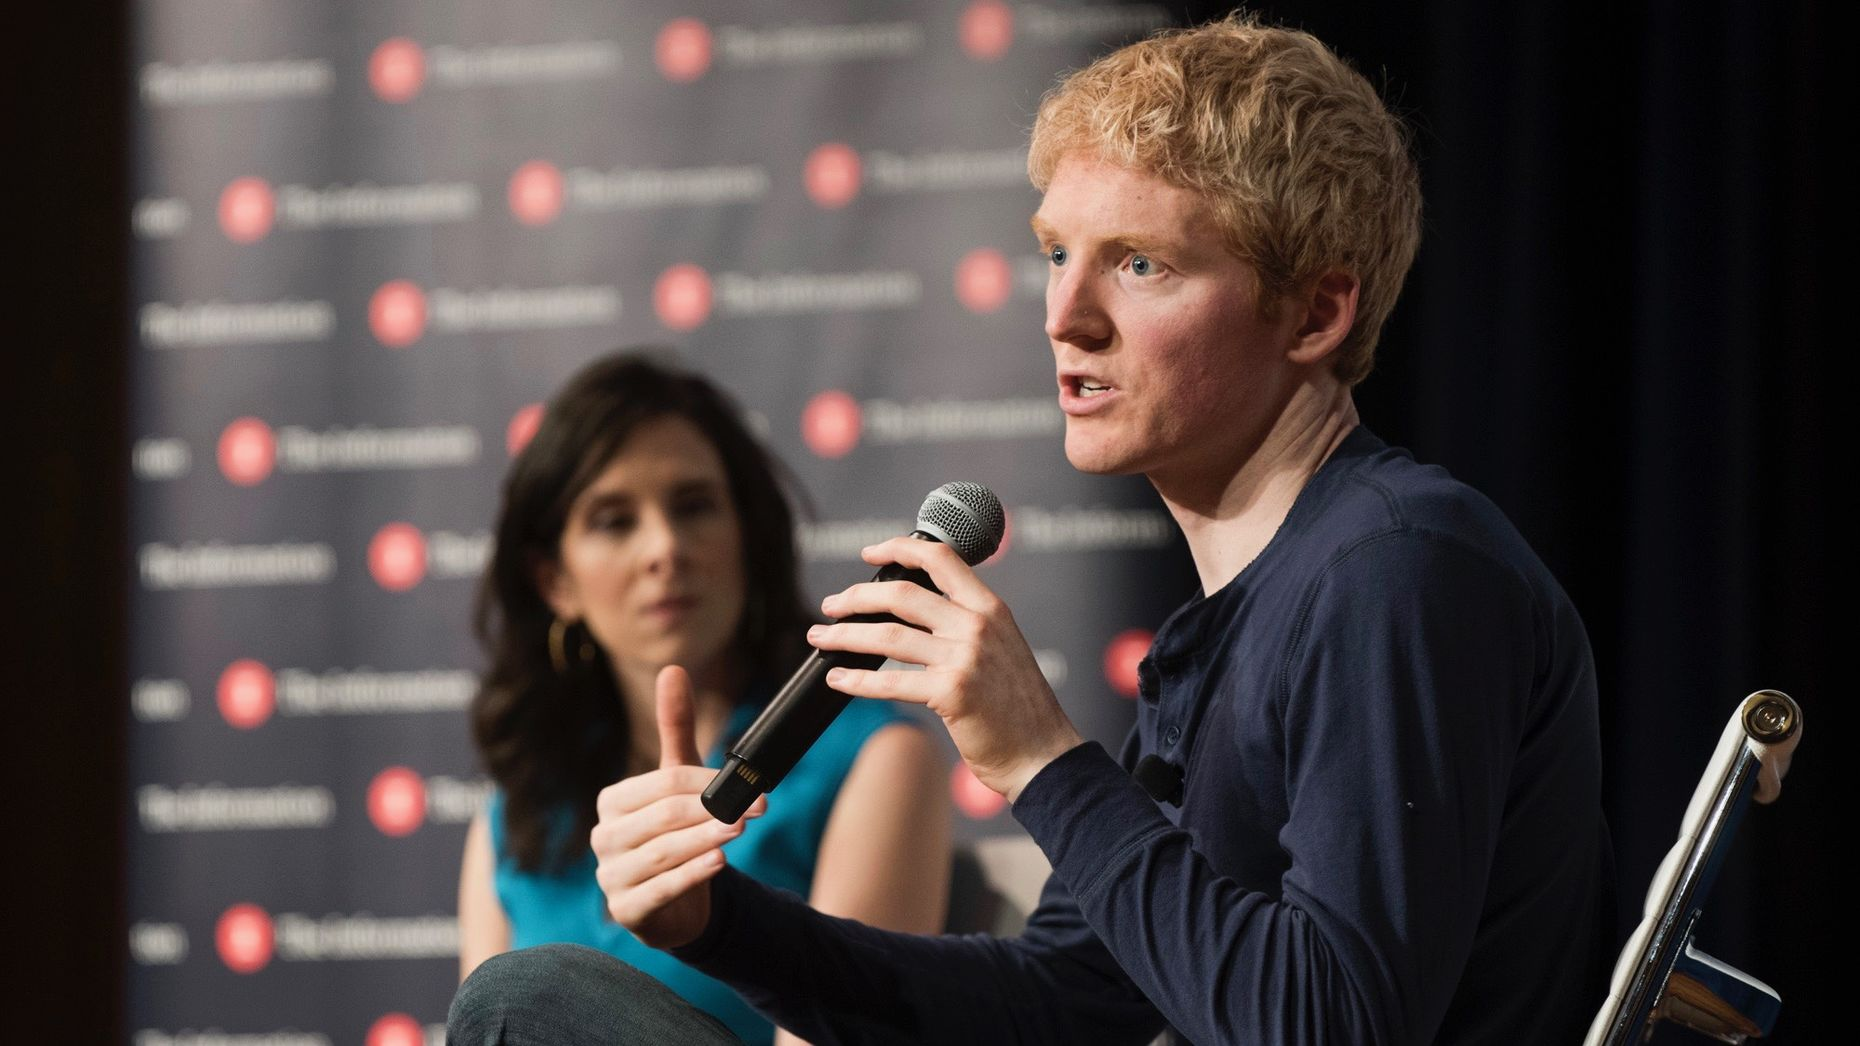 Patrick Collison, CEO & Co-Founder of Stripe.Photo by Erin Beach.